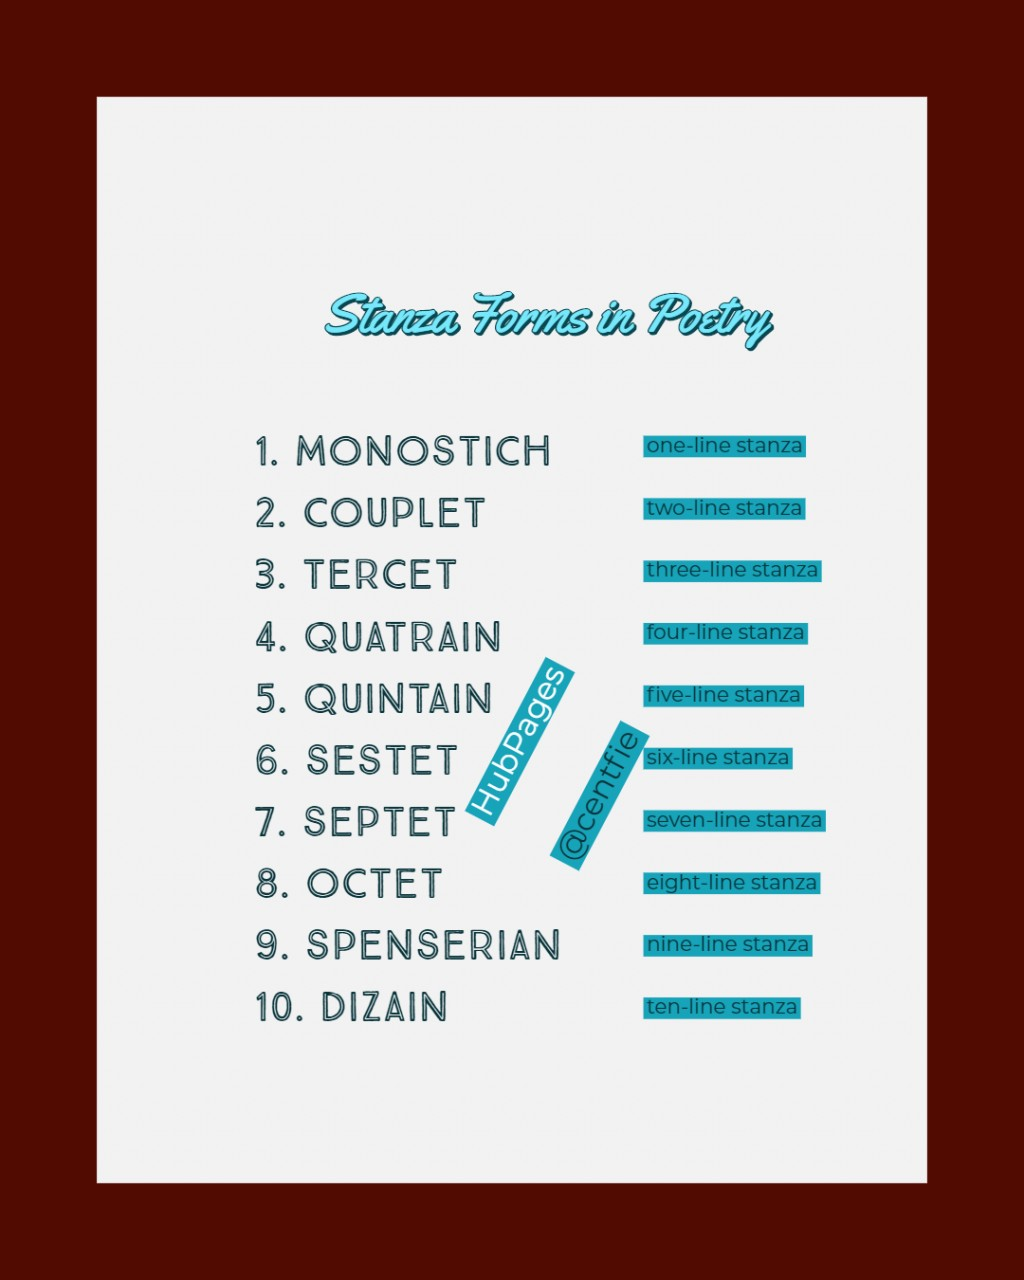 10 Standard Types Of Stanza Forms In Poetry Owlcation